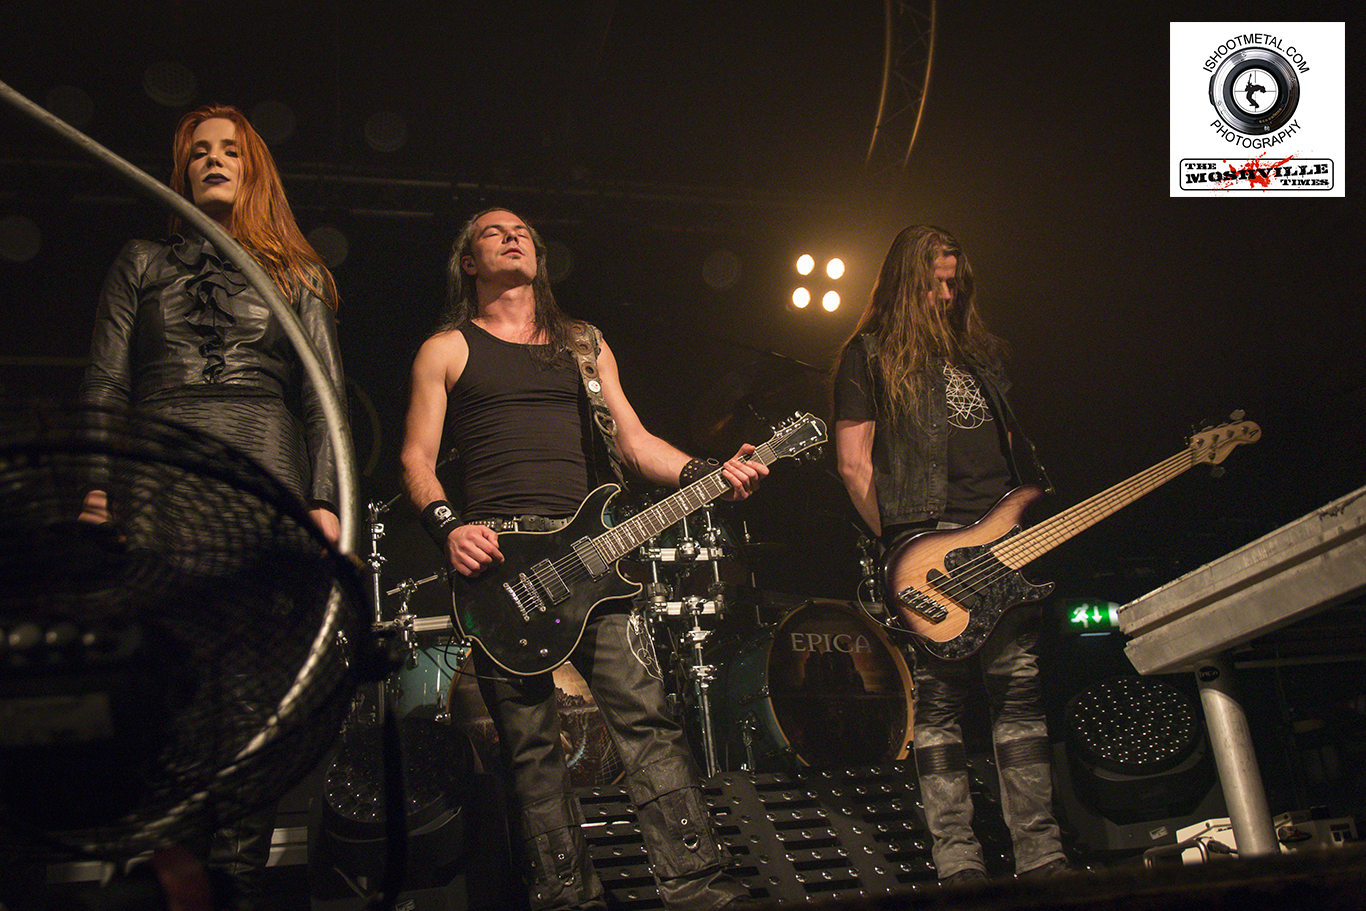 Epica/Eluveitie/Scar Symmetry – The Garage, Glasgow (14th November 2015)